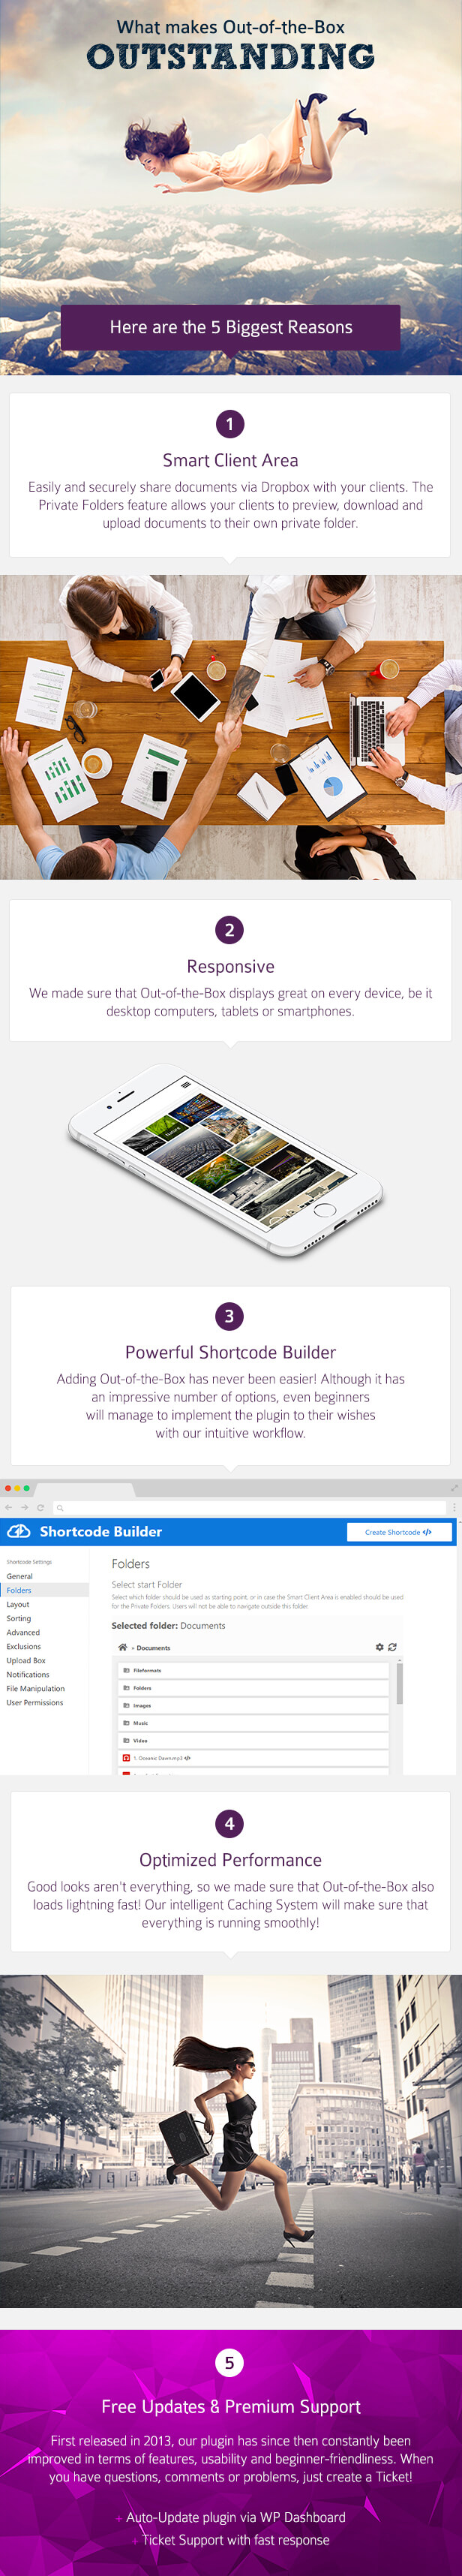 Out-of-the-Box - The #1 Ultimate Dropbox plugin